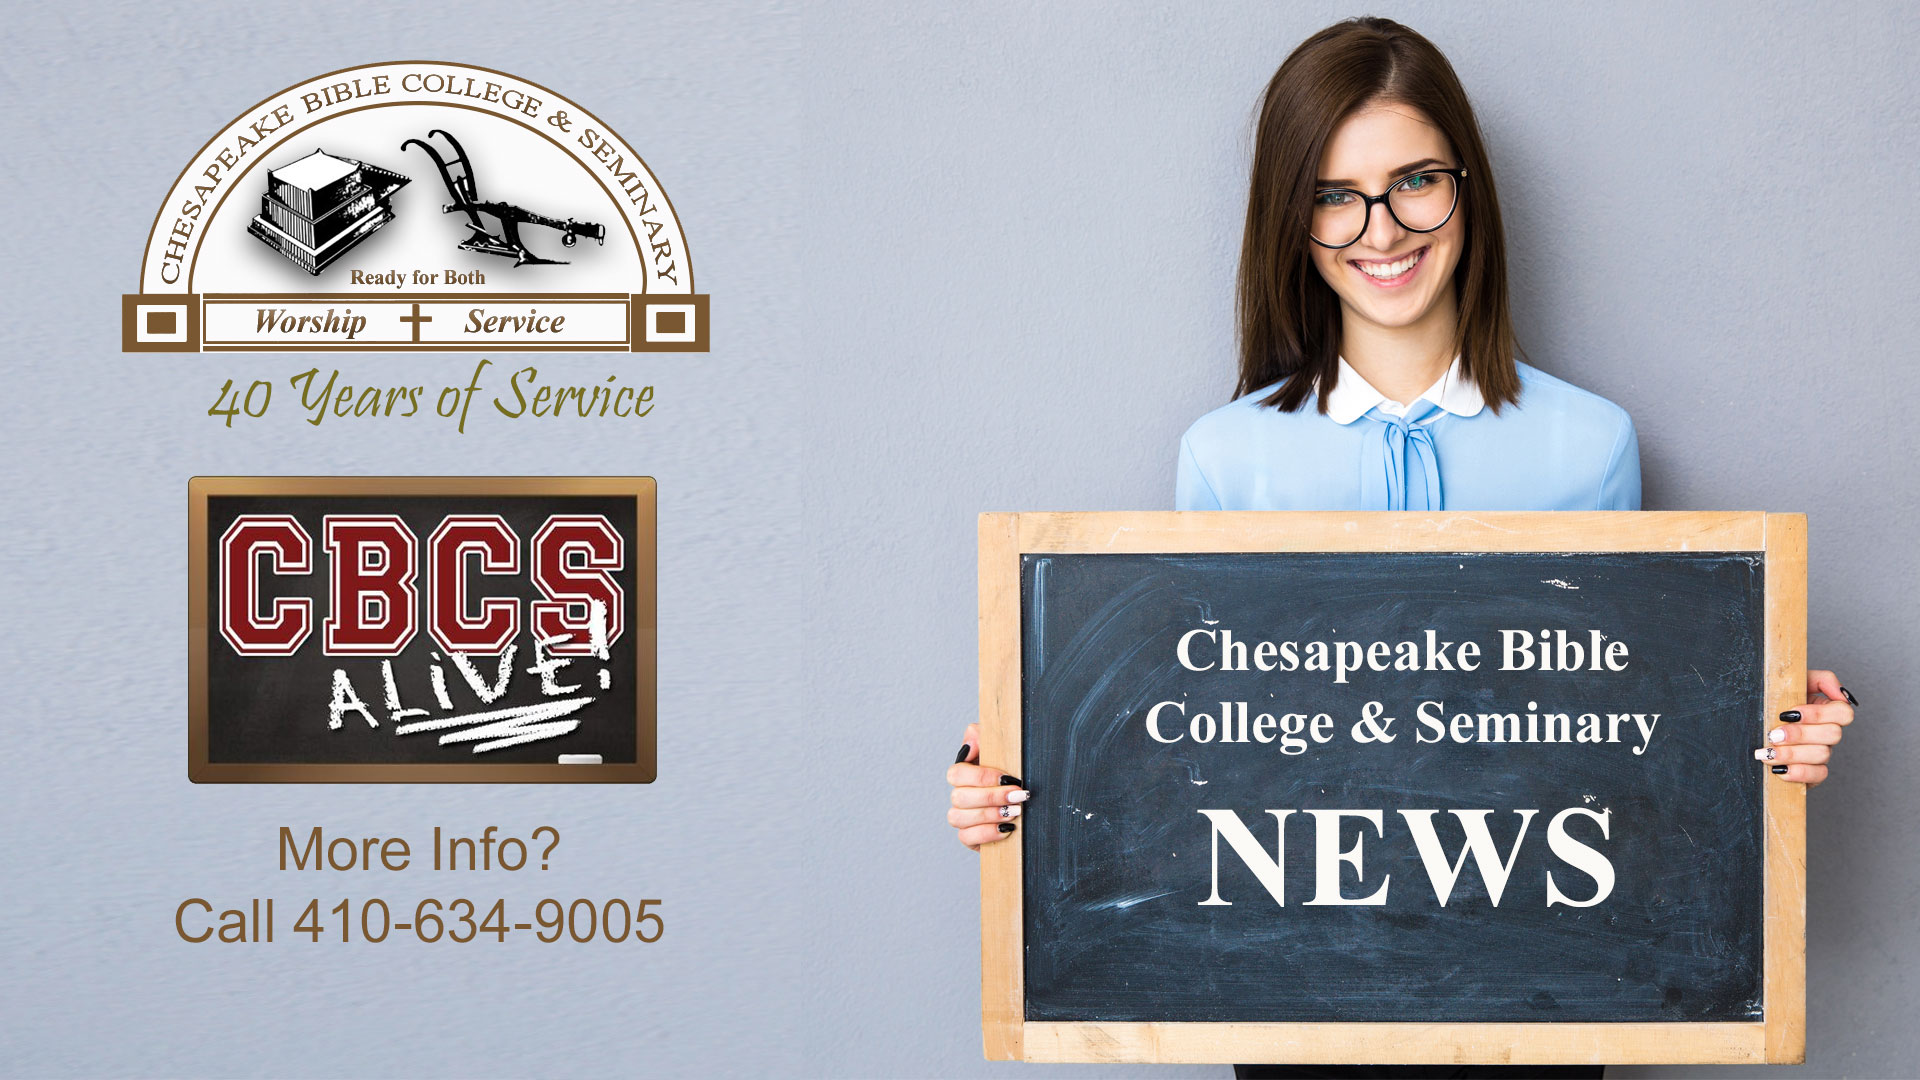 Chesapeake Bible College & Seminary - News